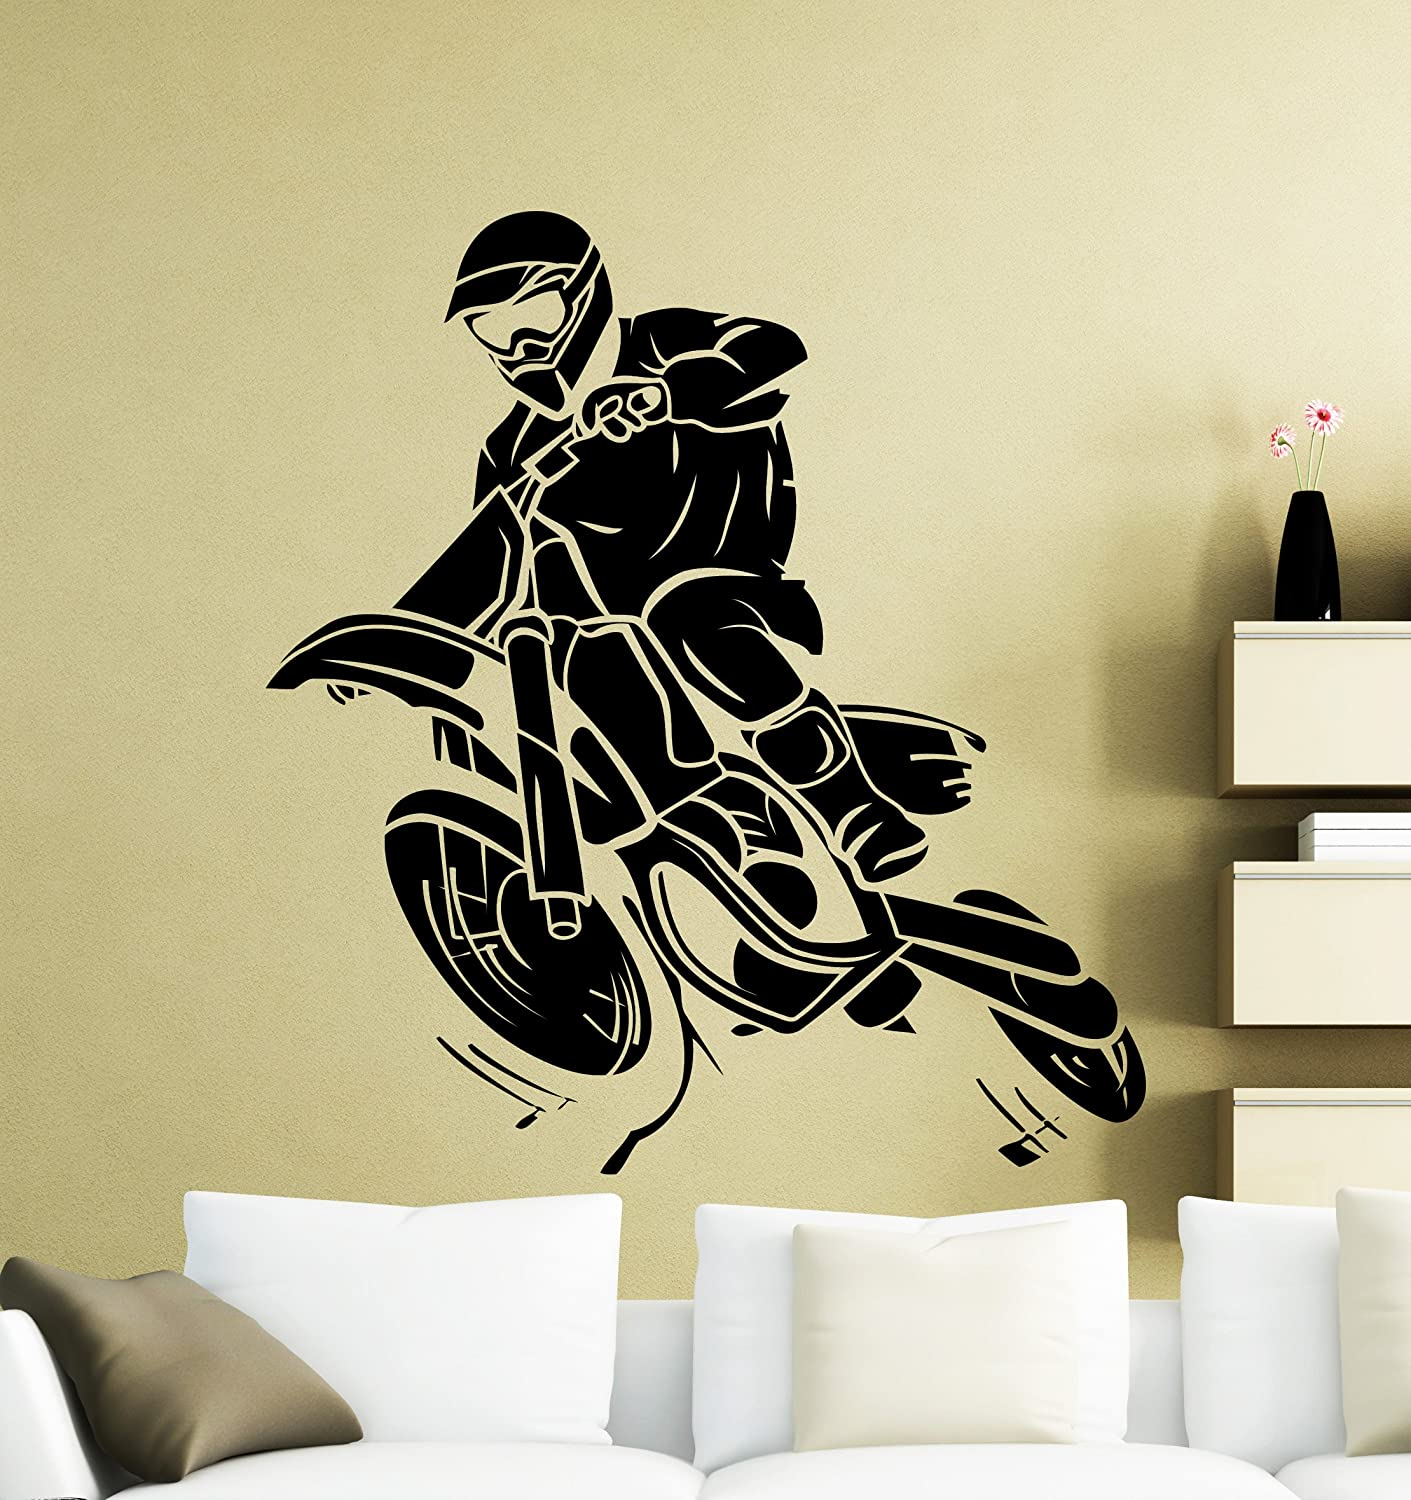 Motorcycle Racer Silhouette Wall Decal Extreme Sport Motocross Moto ...